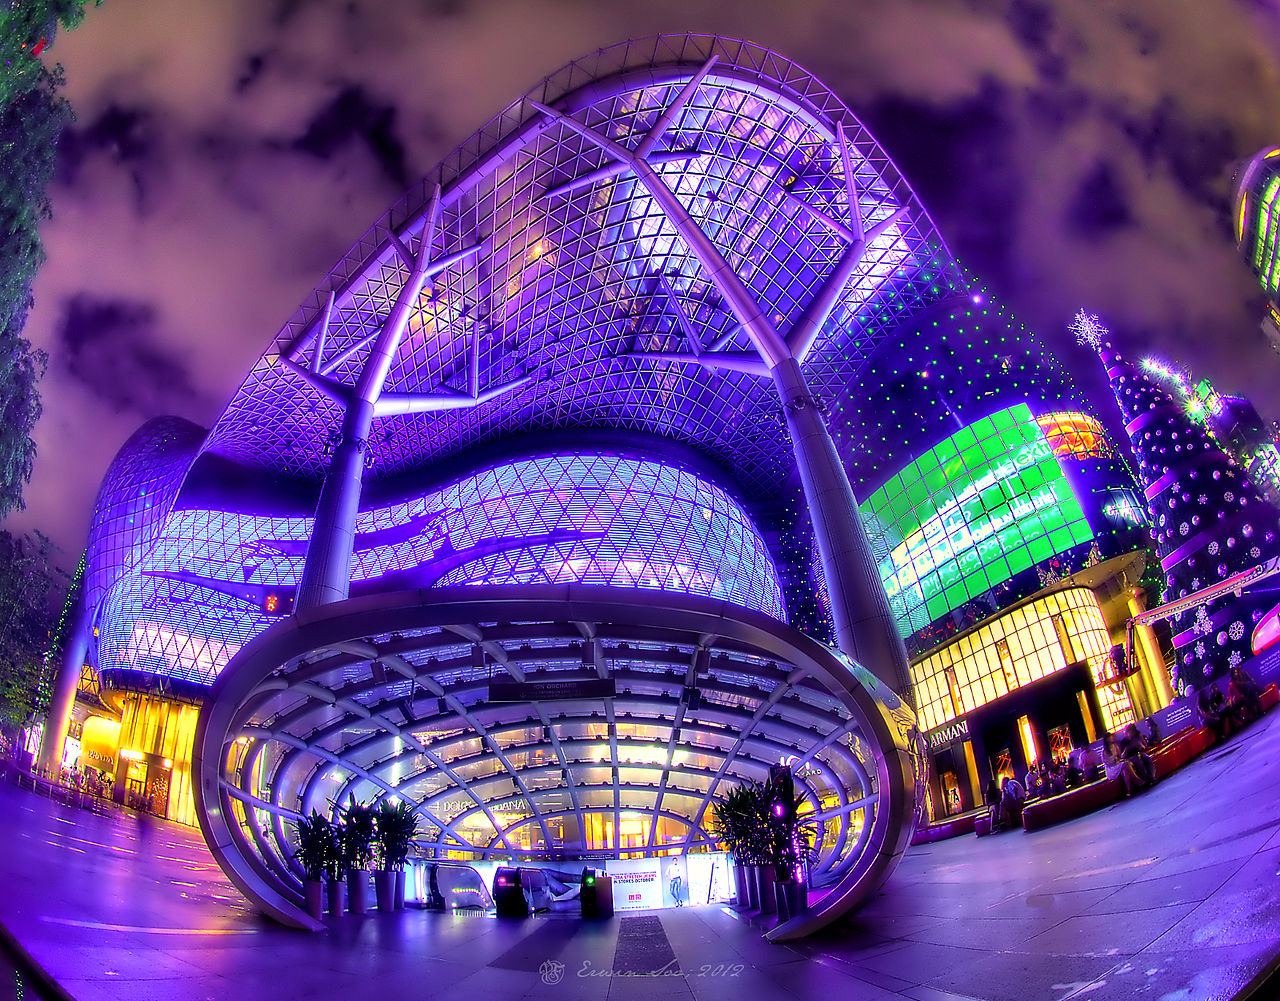 1280px-ION_Orchard,_Orchard_Road,_Singapore_(8171082584)